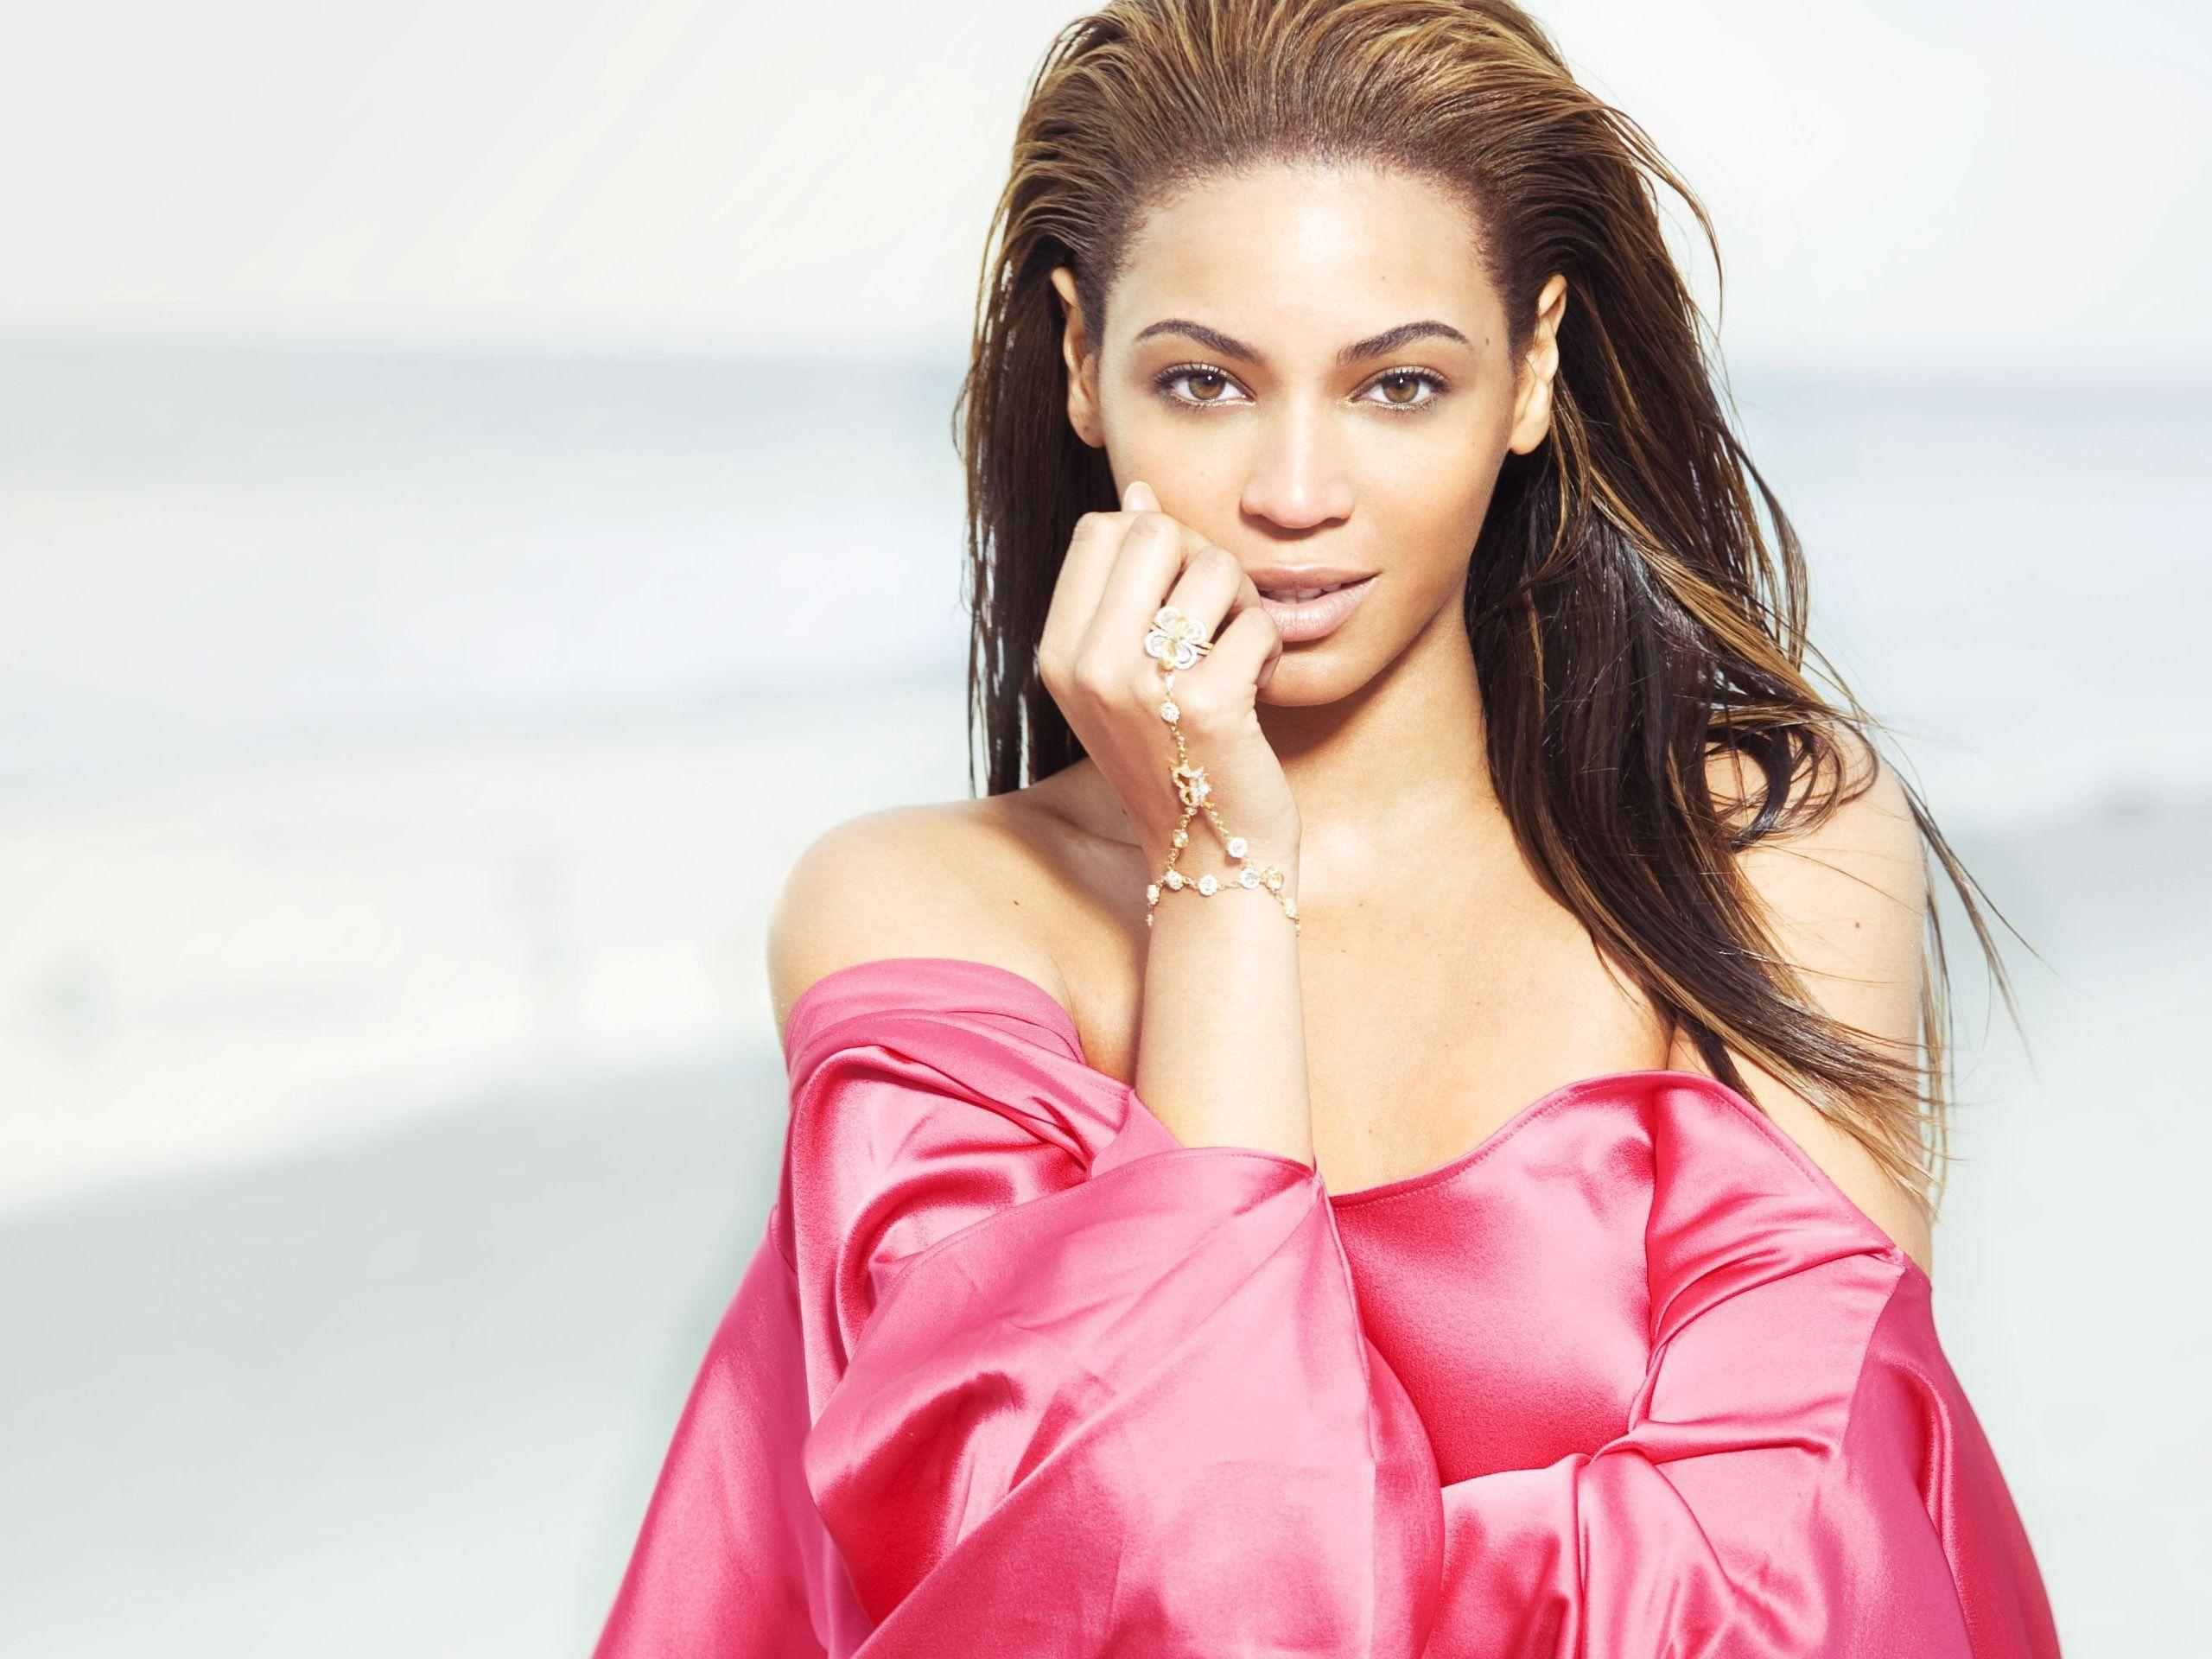 Beyonce Wallpapers 39838 in Celebrities F